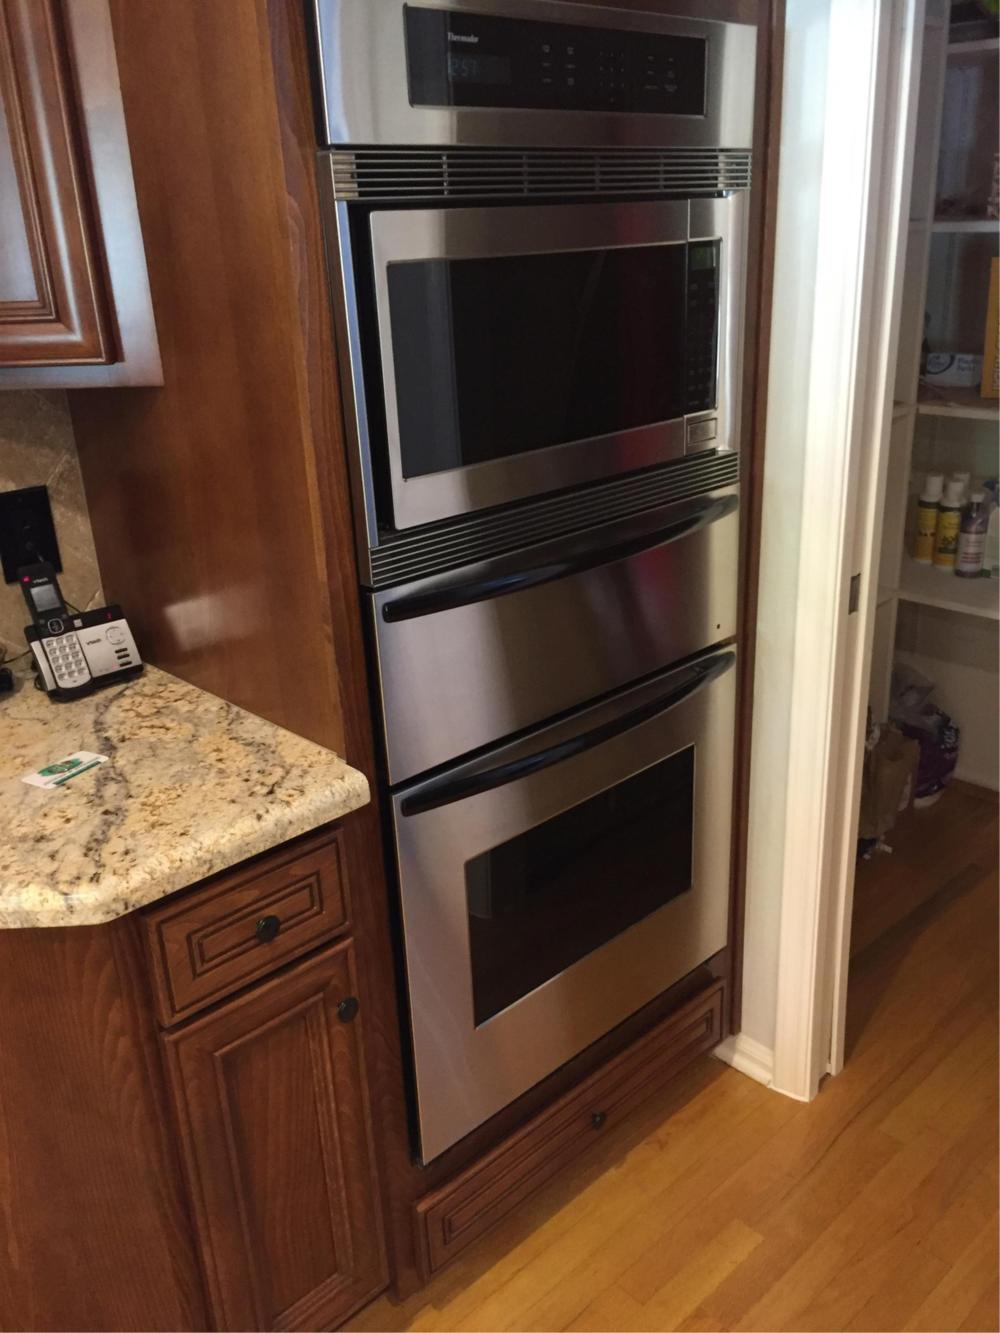 Thermador Electric Double Oven - Smw272